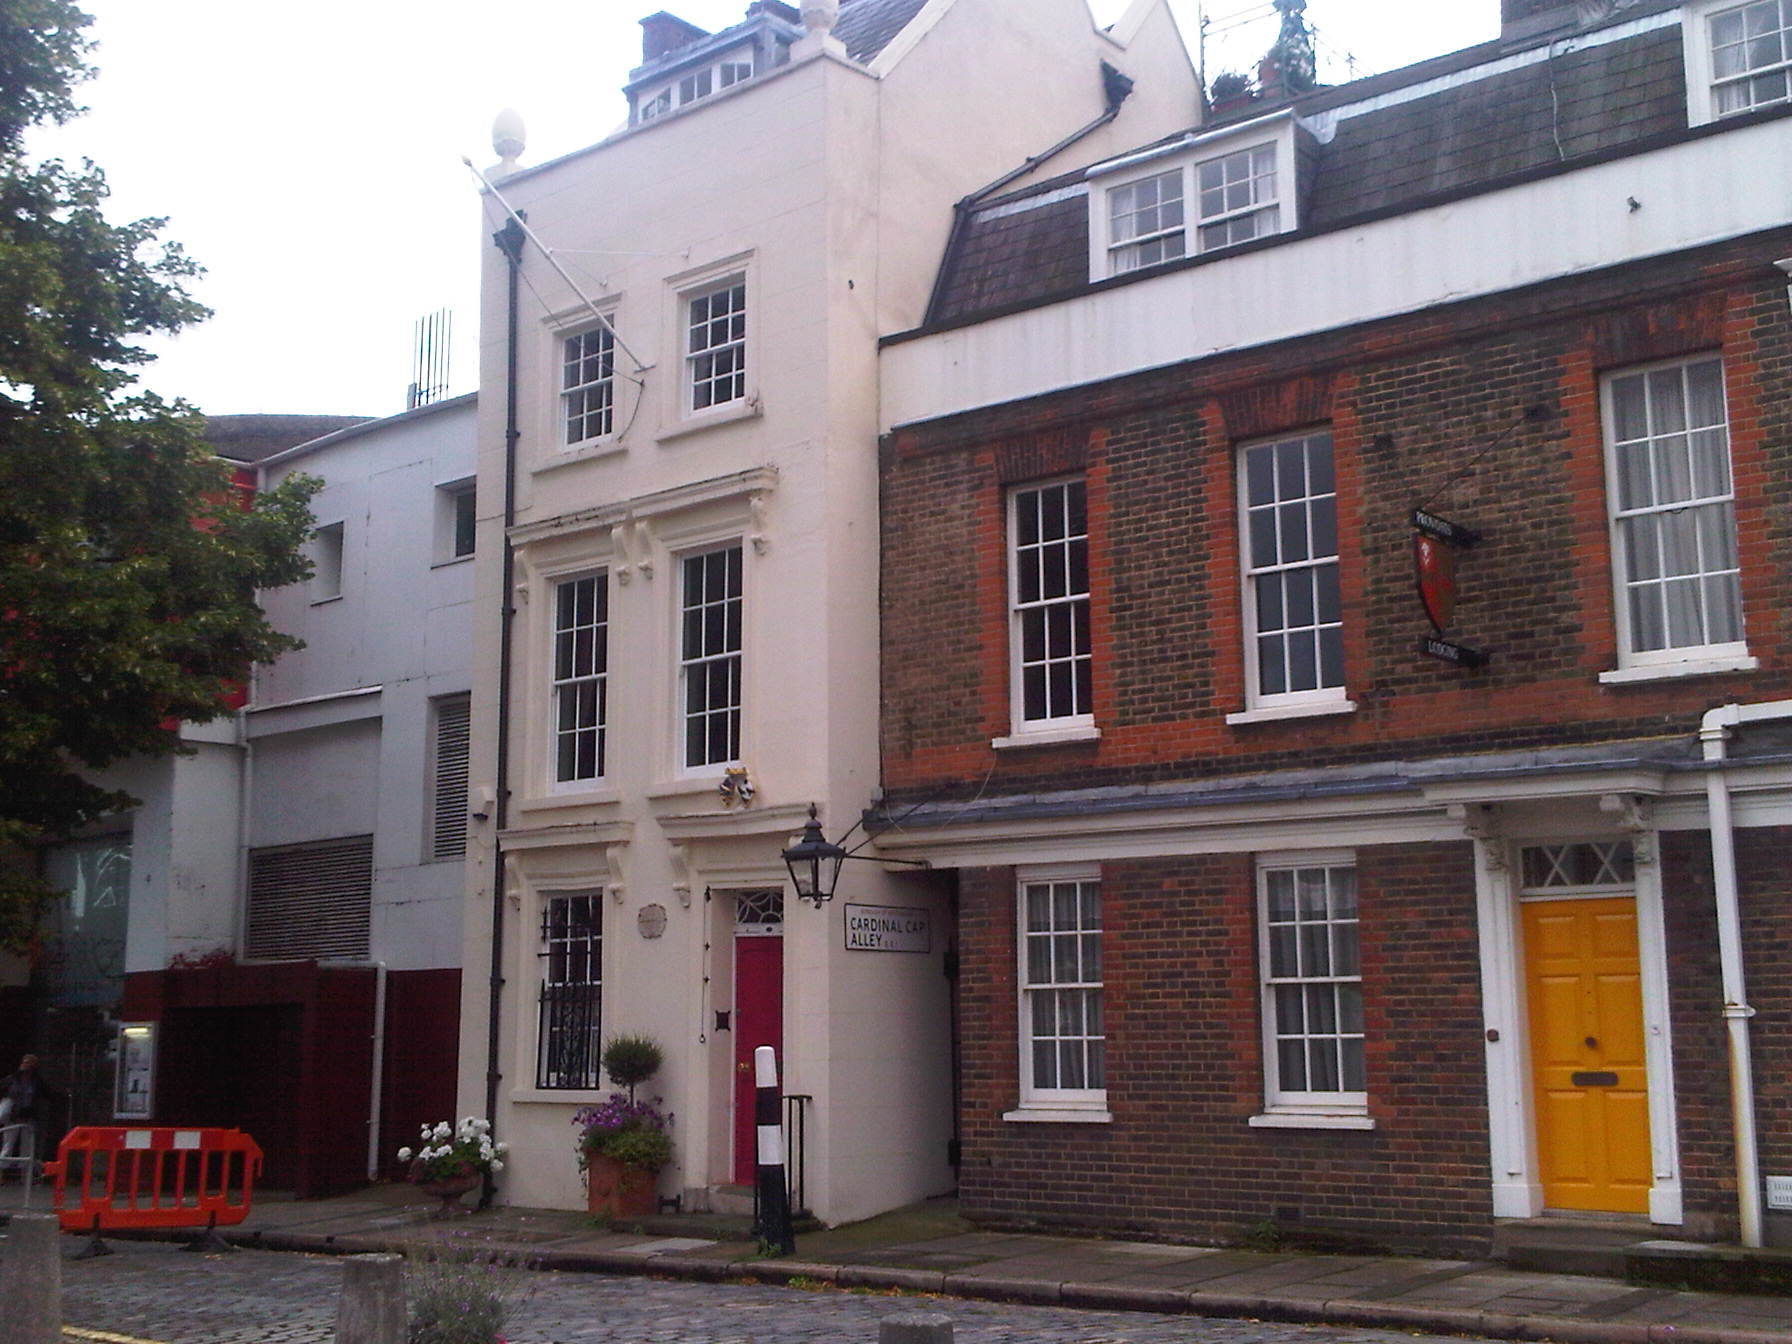 Christopher Wren Hotel And Spa